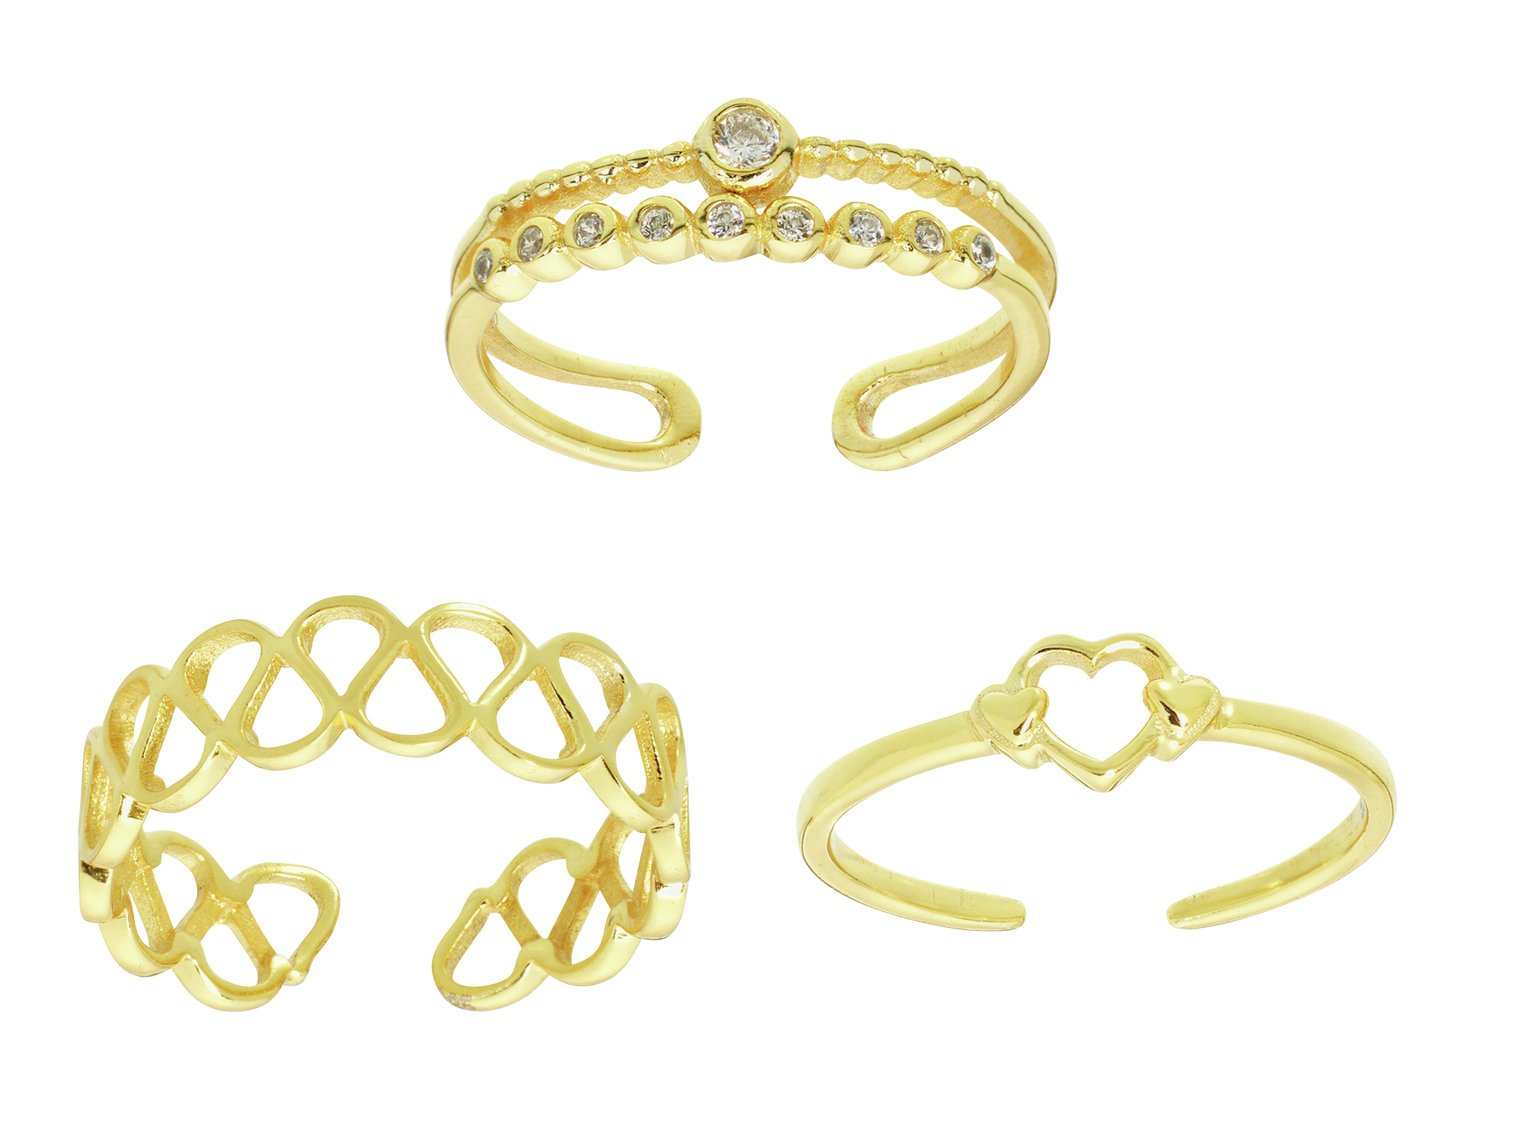 State of Mine 9ct Gold Plated Silver Toe Rings - Set of 3